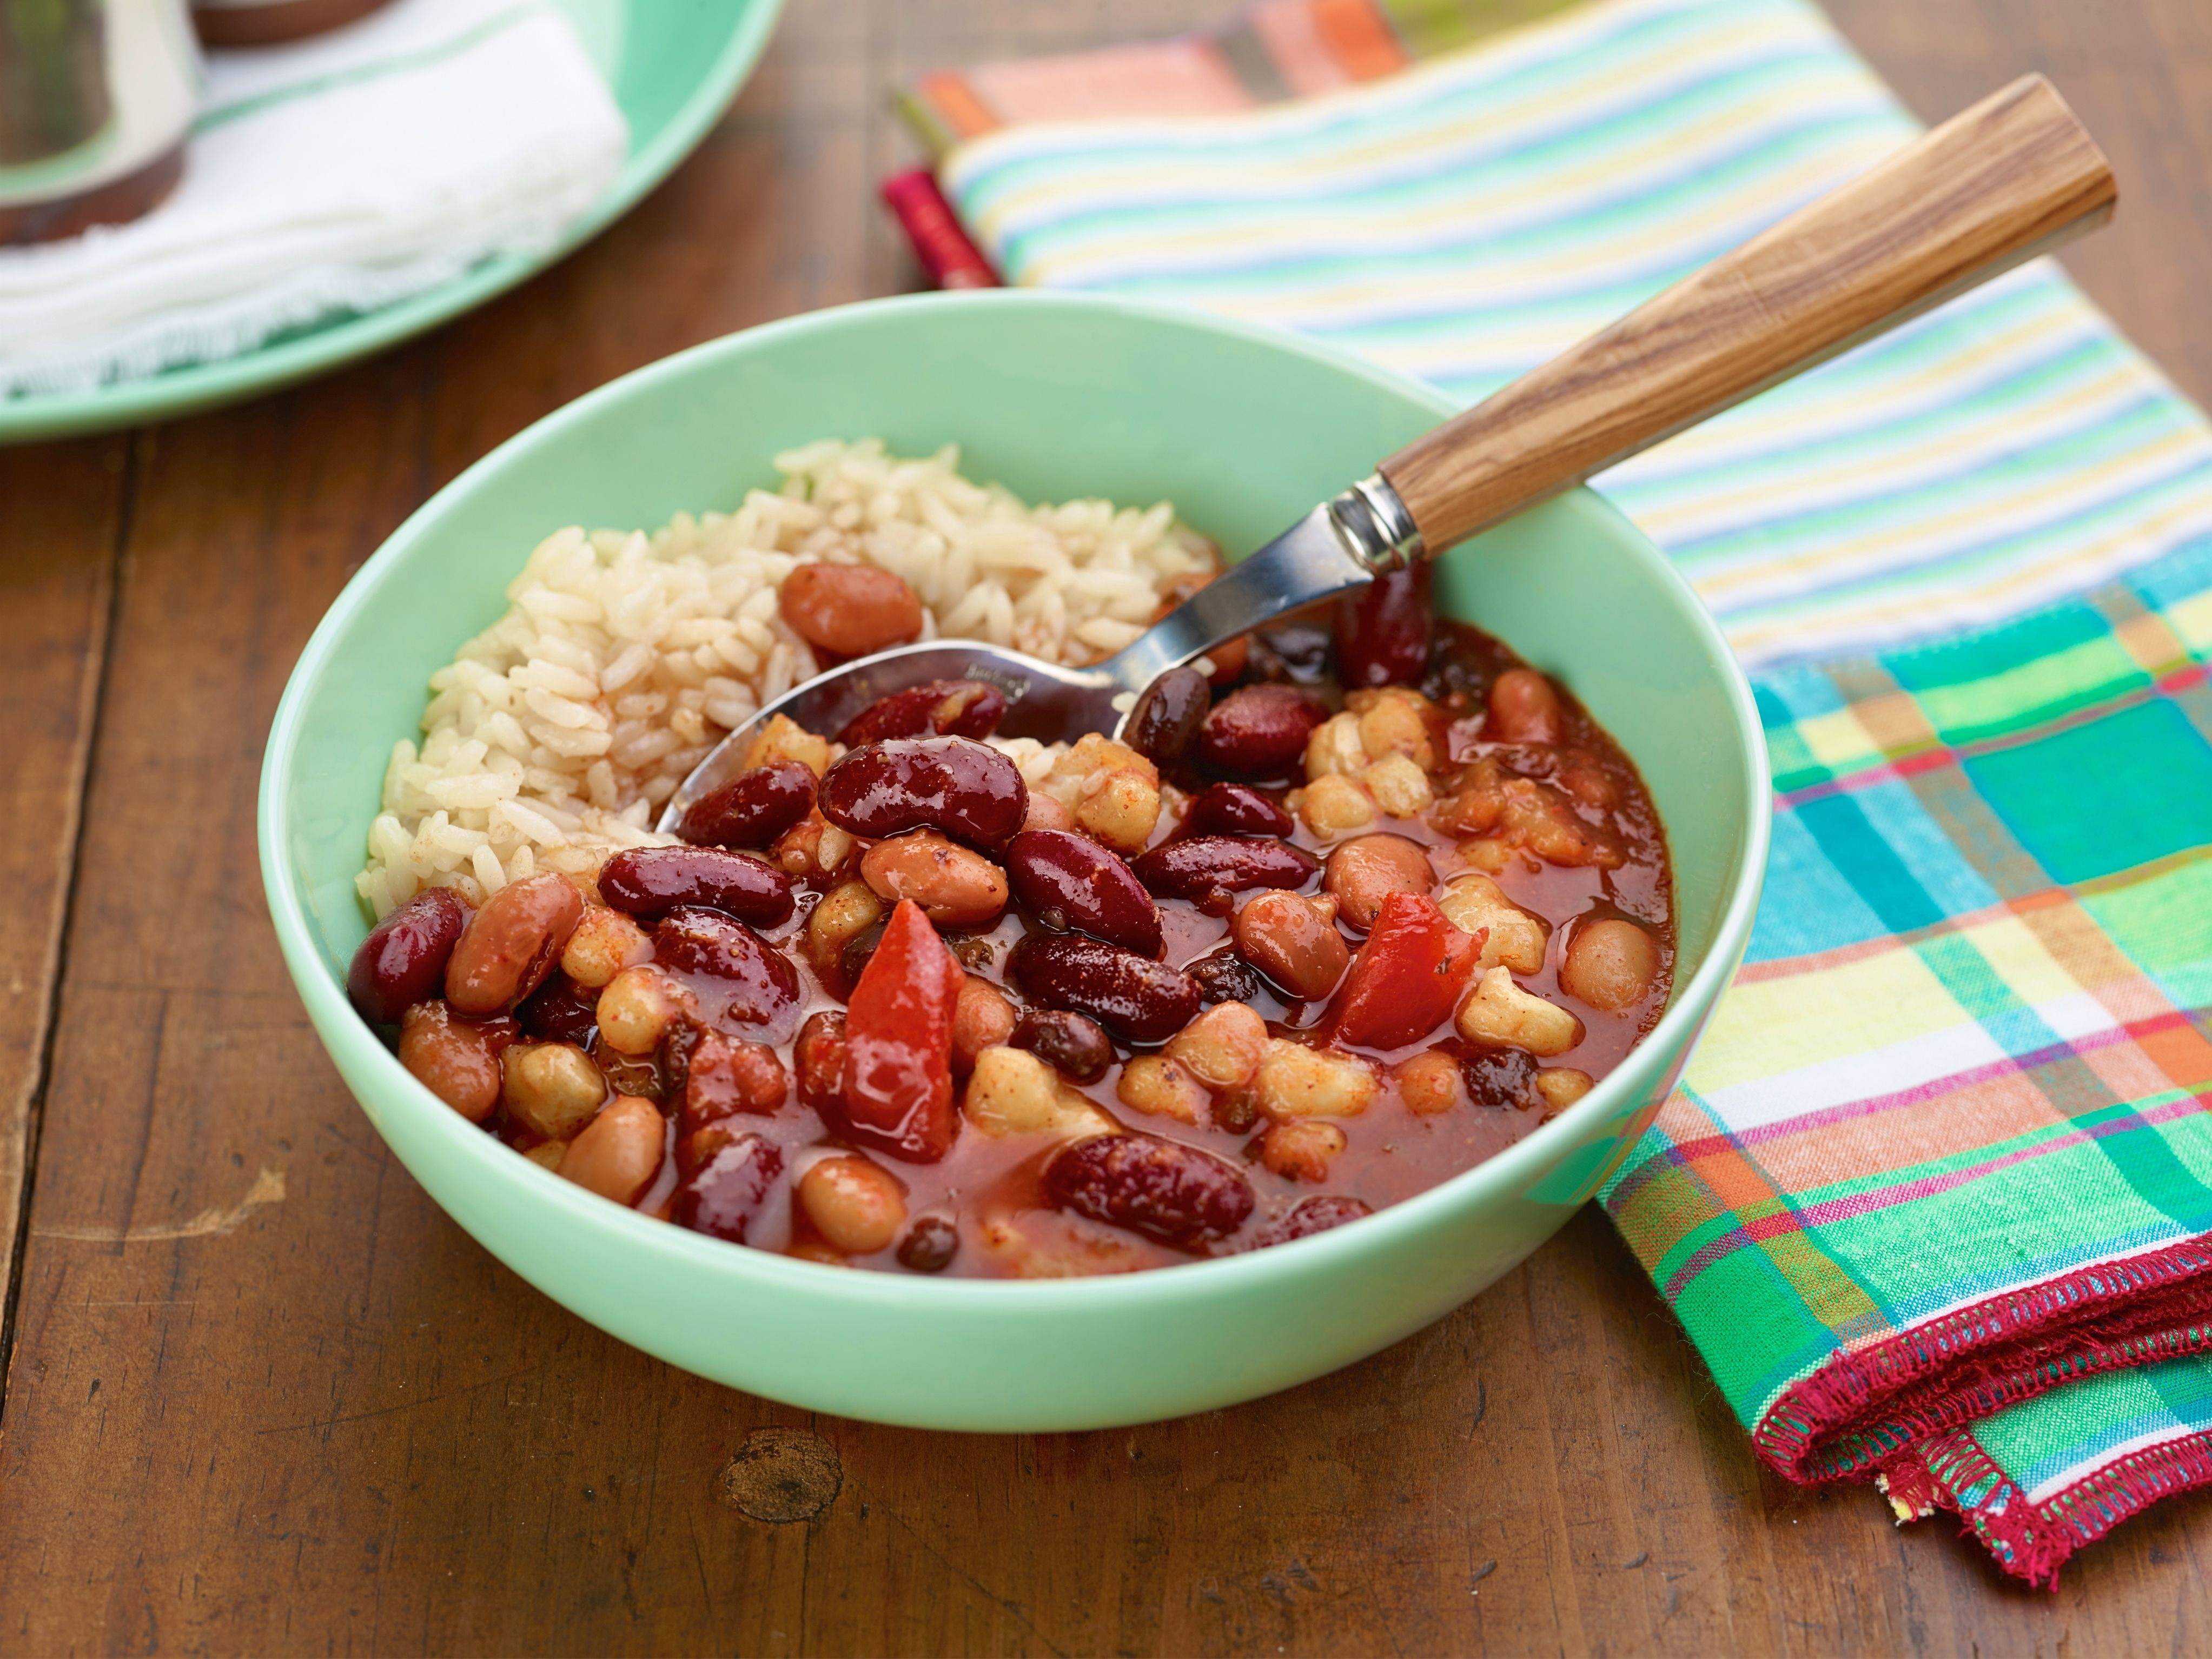 Spicy three bean pantry chili recipe chili recipes pantry and spicy spicy three bean pantry chili chili recipe food networkchili forumfinder Image collections